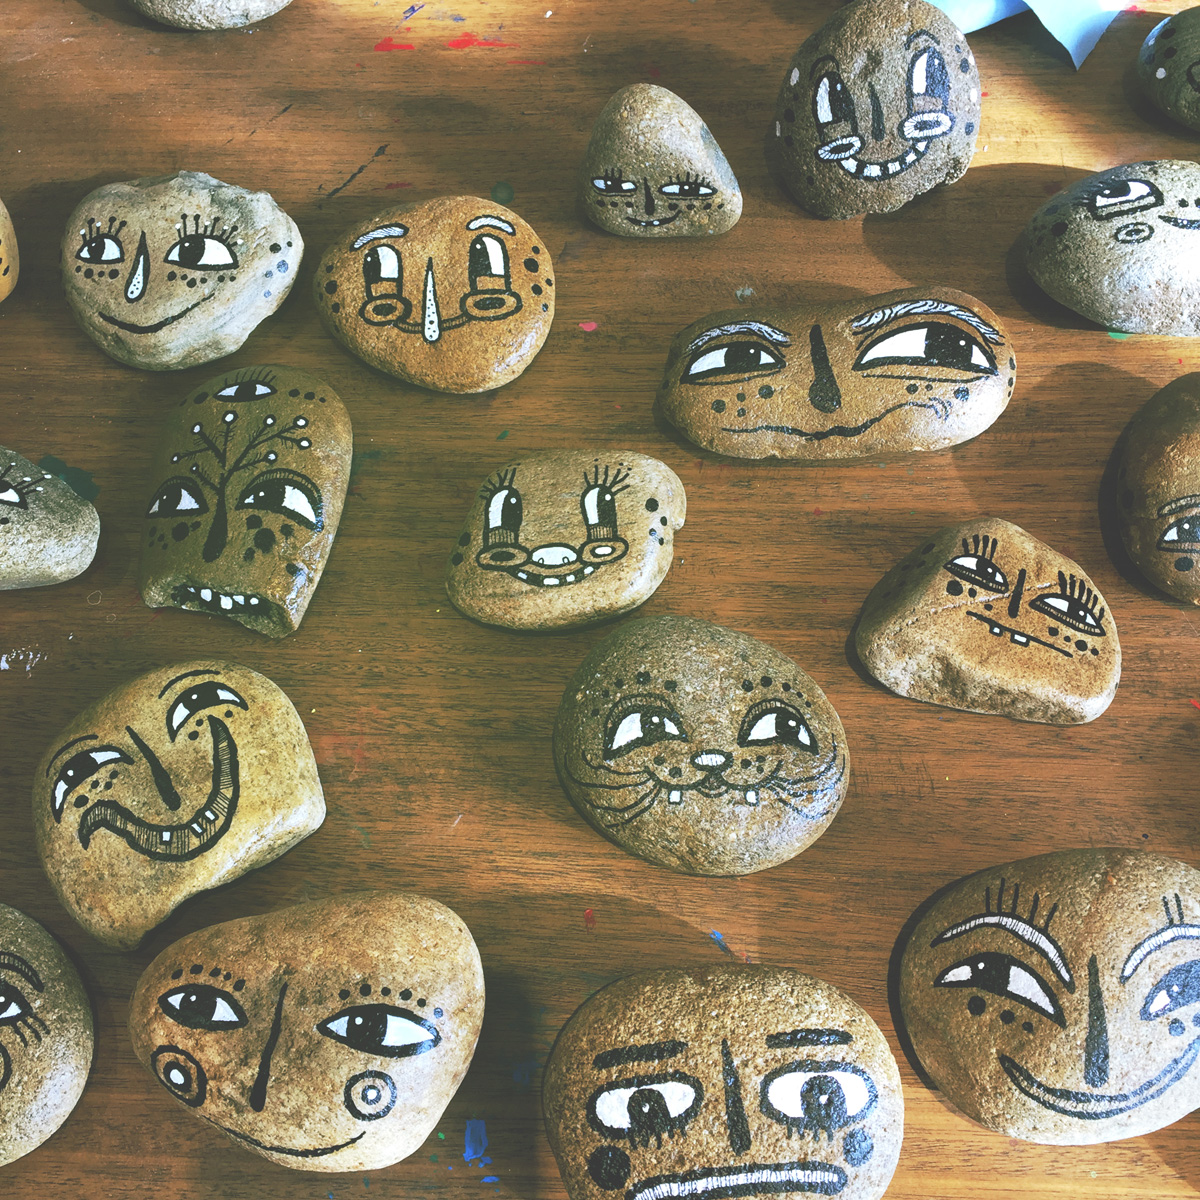 - BlackCatTips painted stones rocks faces.jpg -11